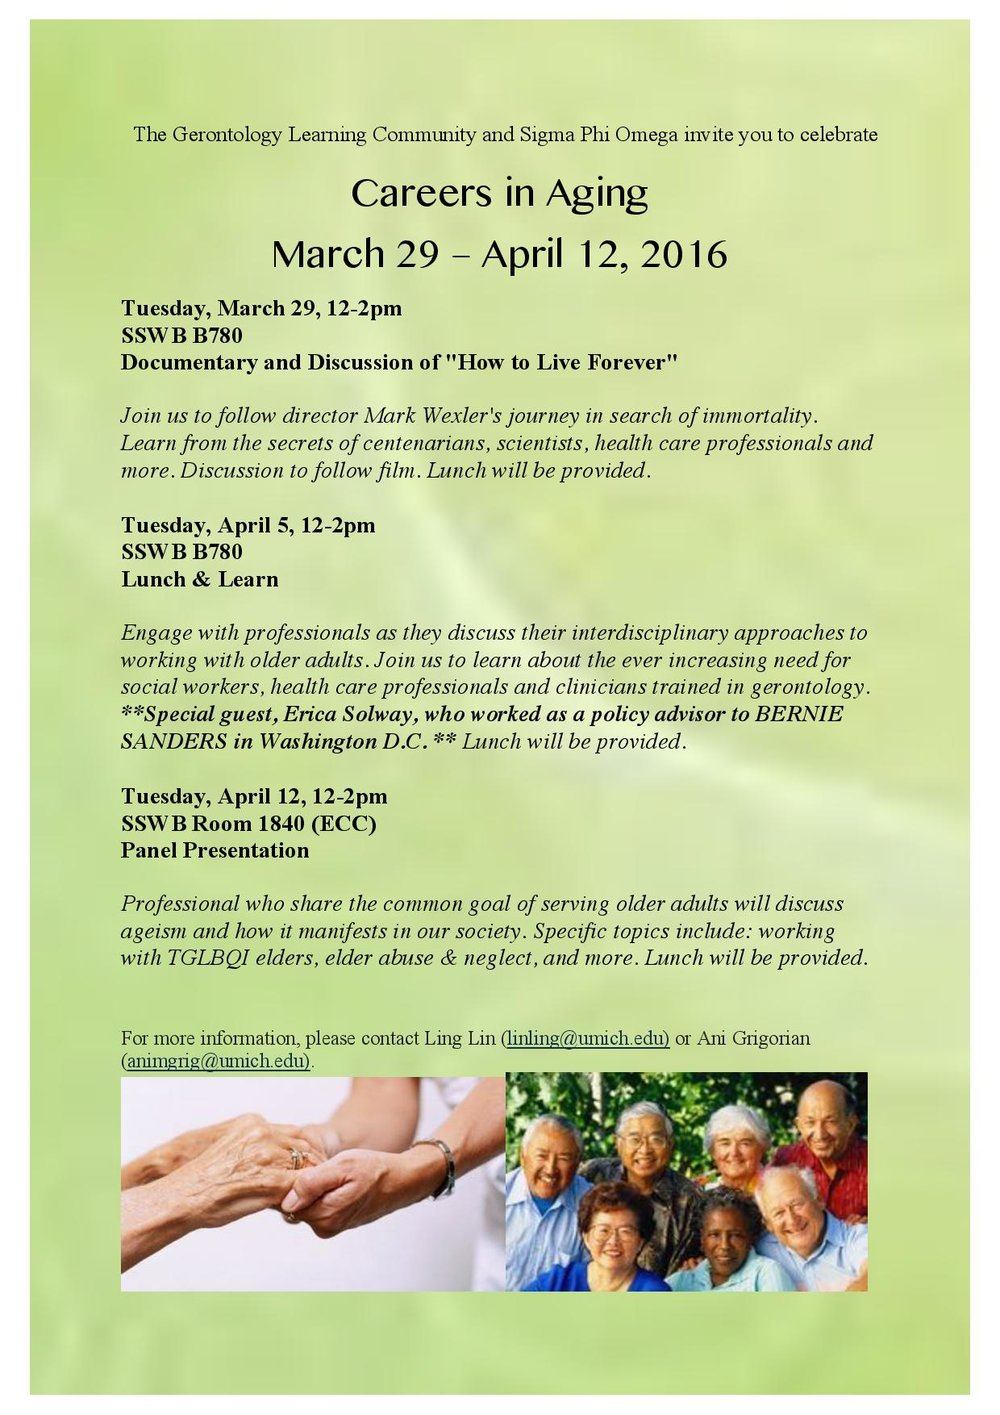 Careers in Aging Event Flyer -page-001.jpg